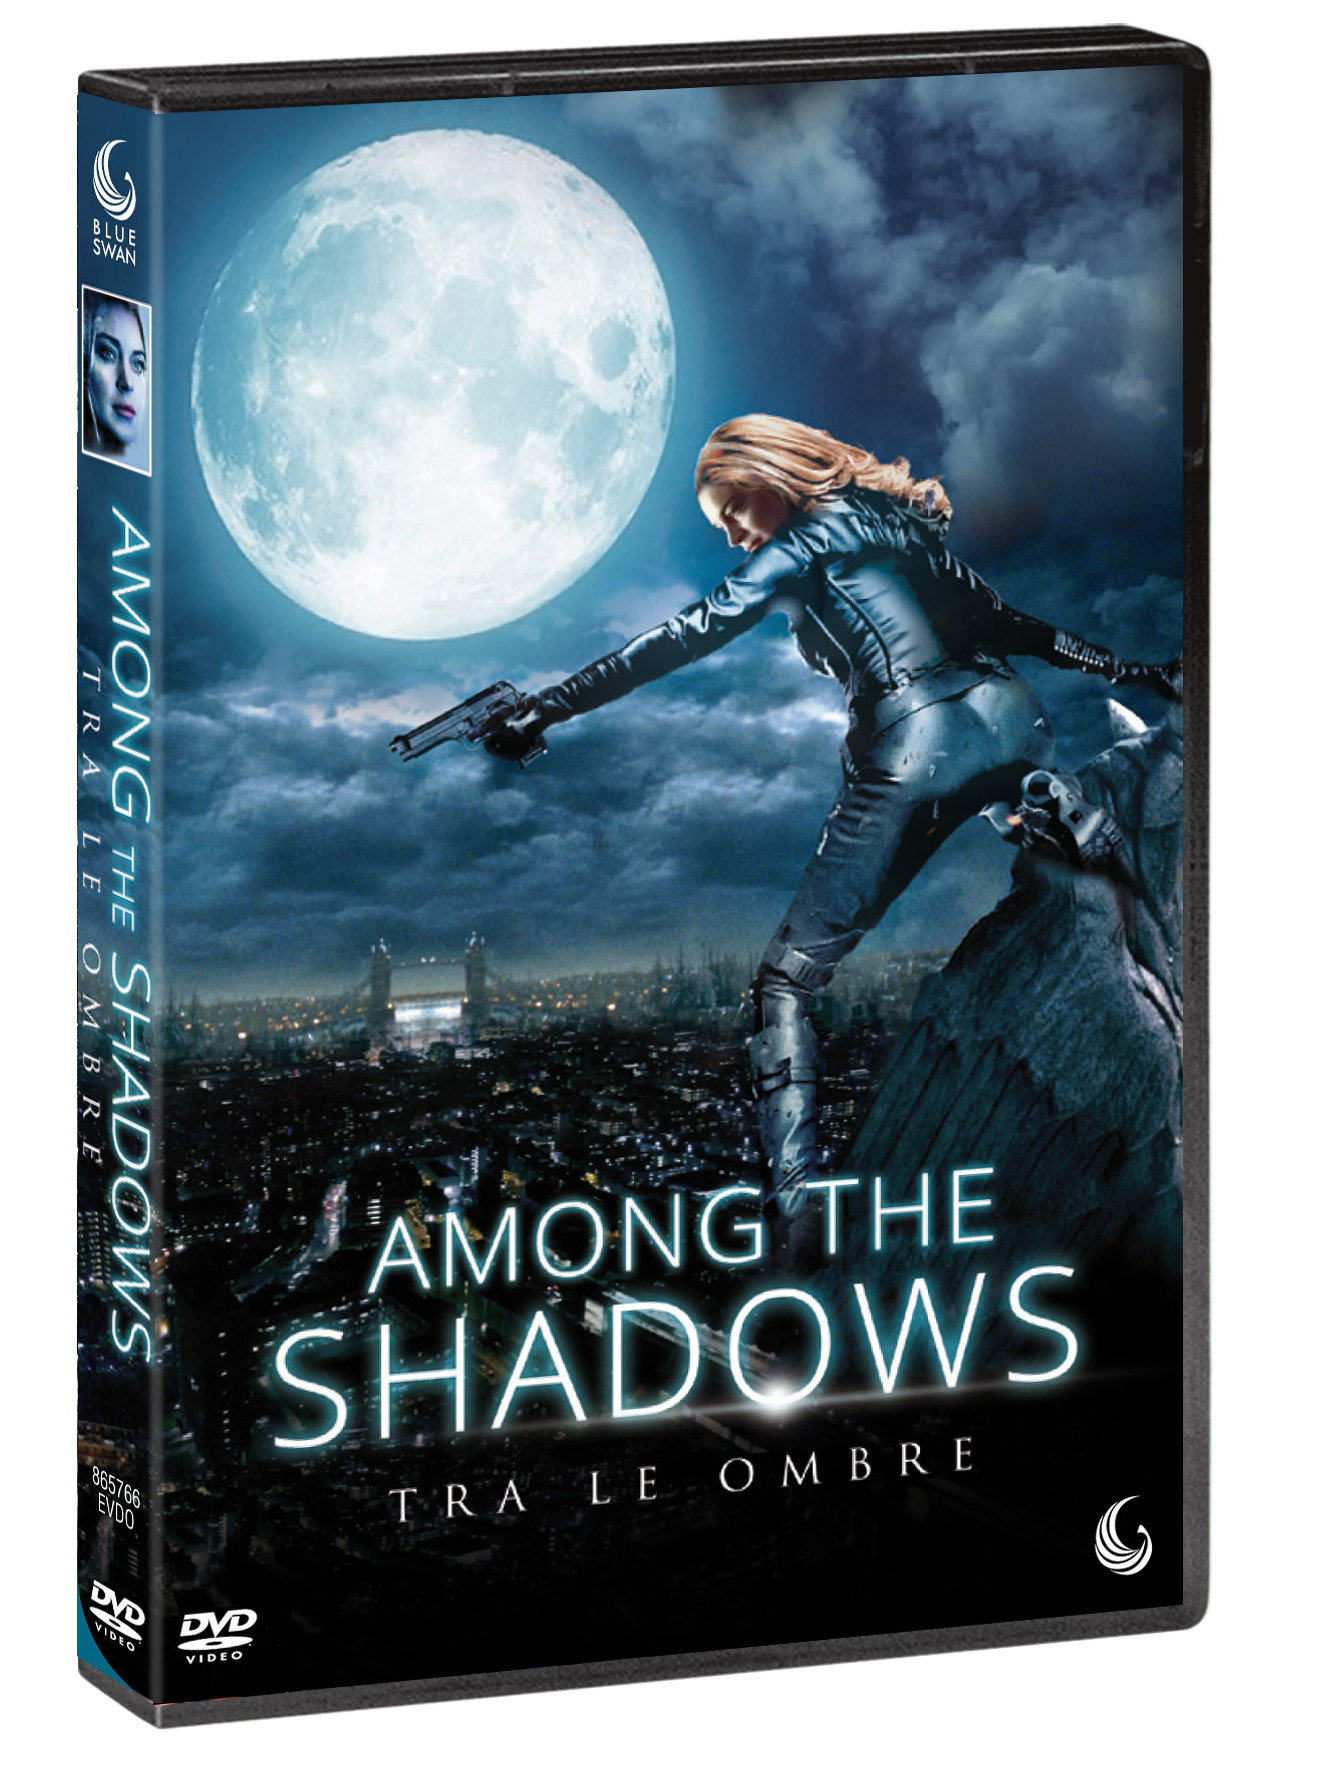 AMONG THE SHADOWS - TRA LE OMBRE (DVD)